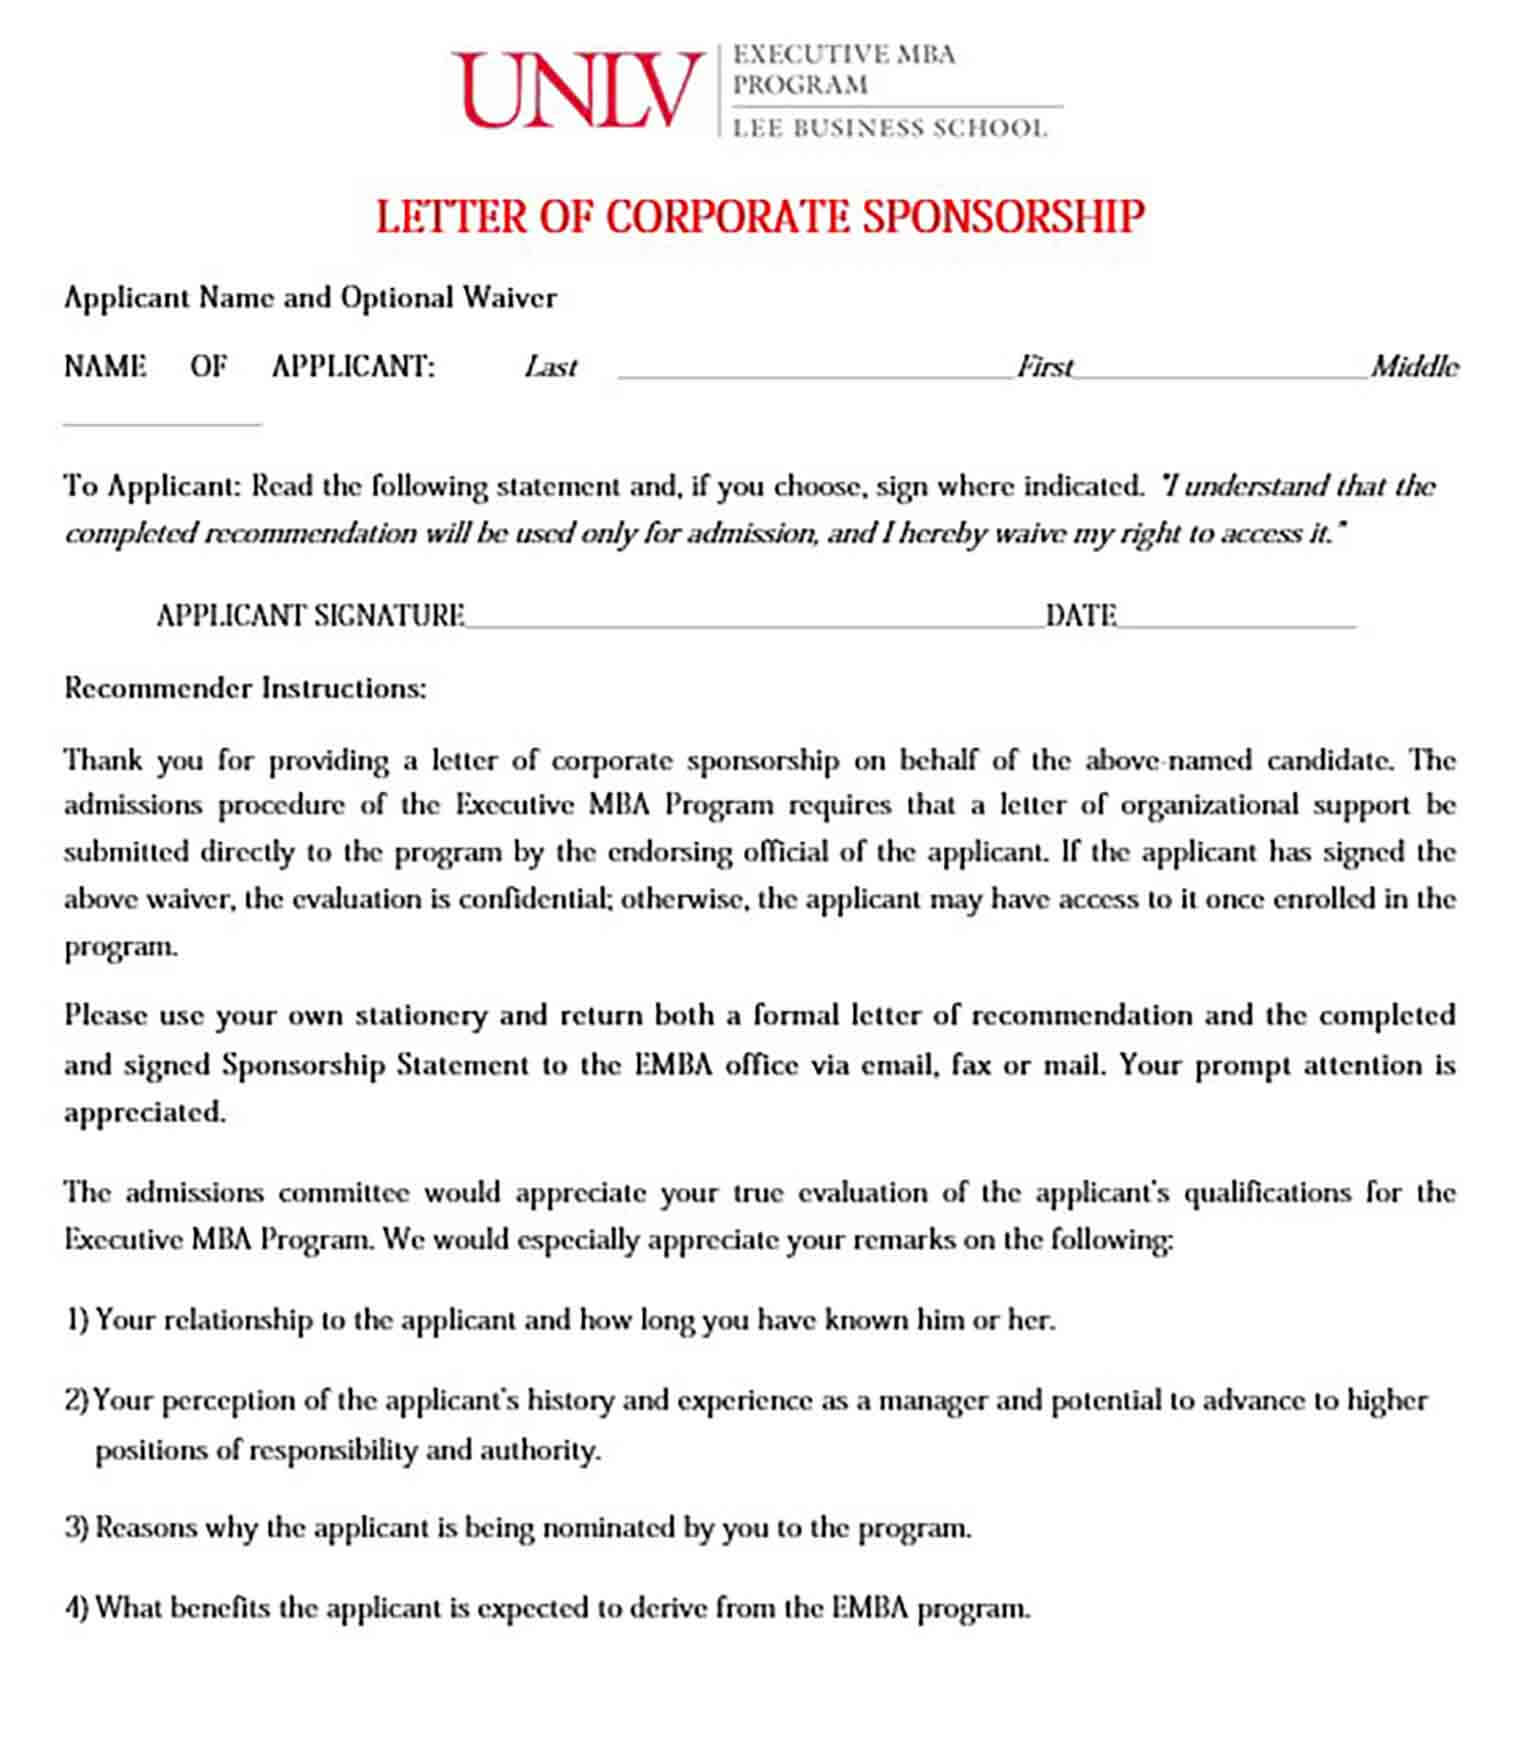 Corporate Sponsorship Letter Form